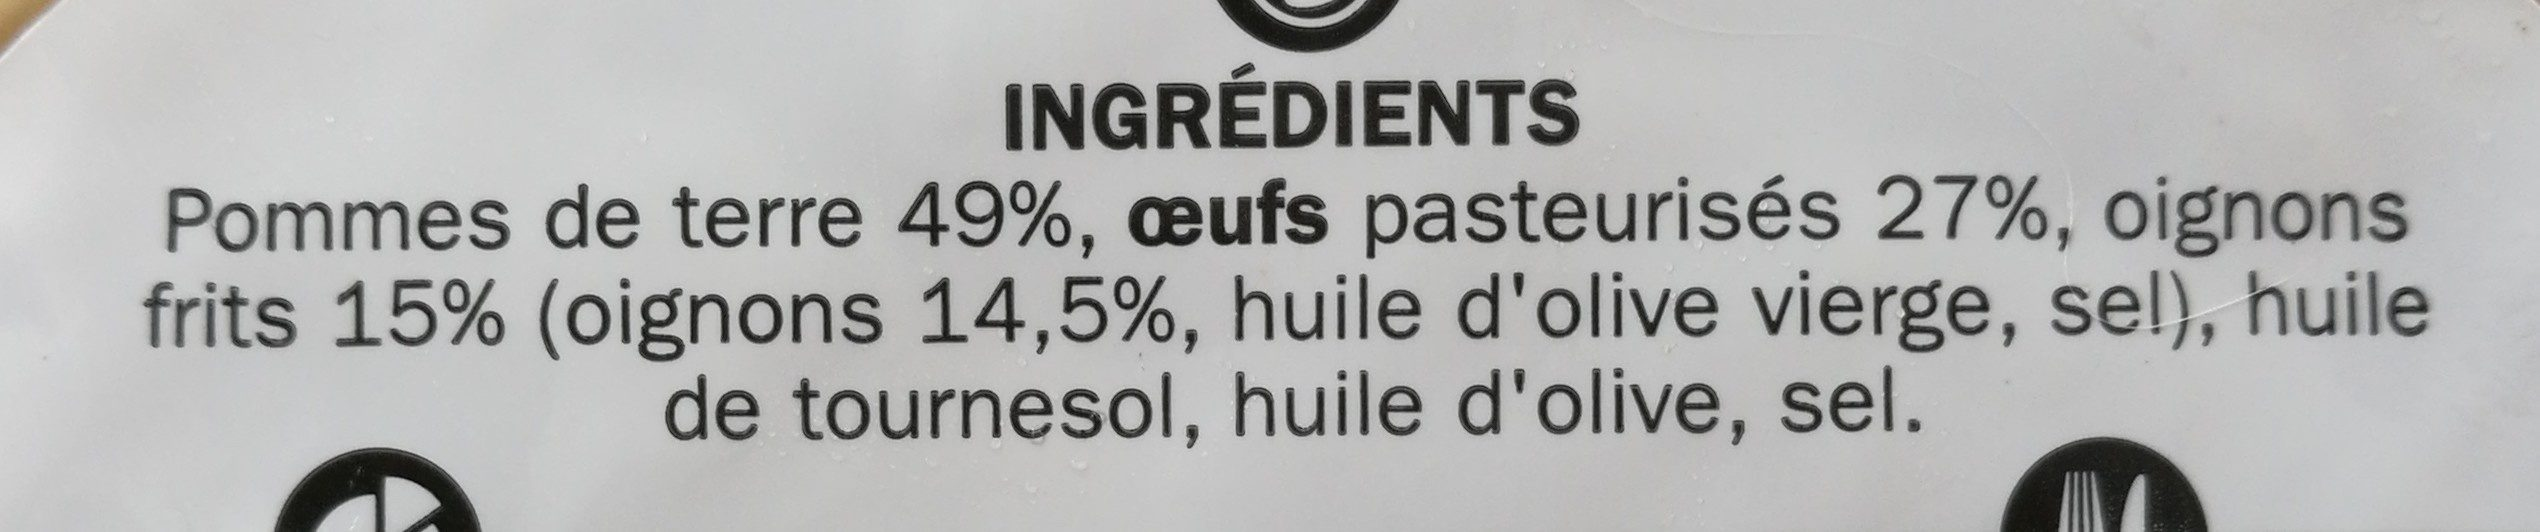 Tortilla oignon - Ingredients